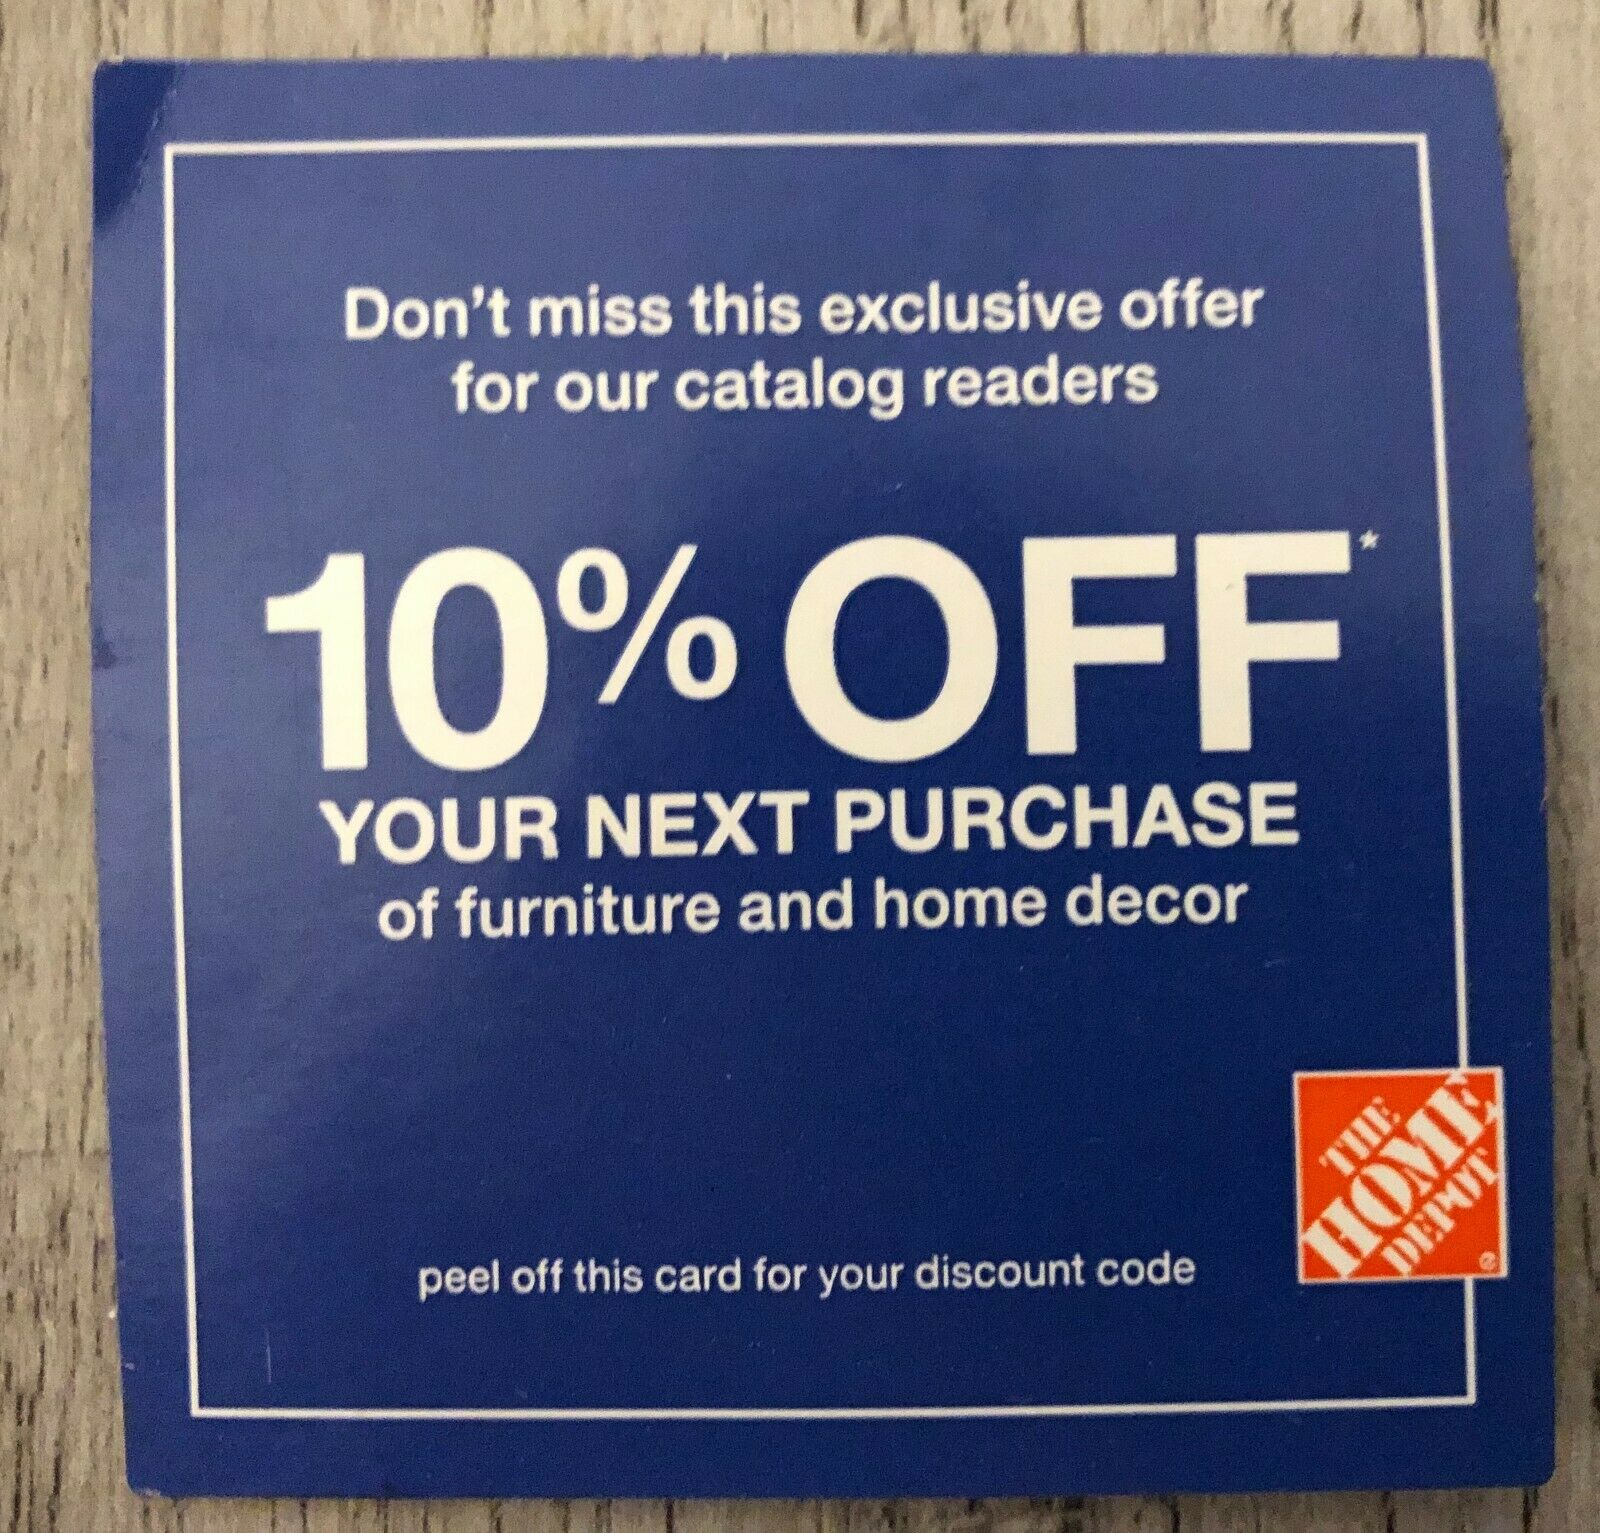 10 OFF Home Depot Coupon Save Up To 200 Exp. 3/14/21 - $21.95